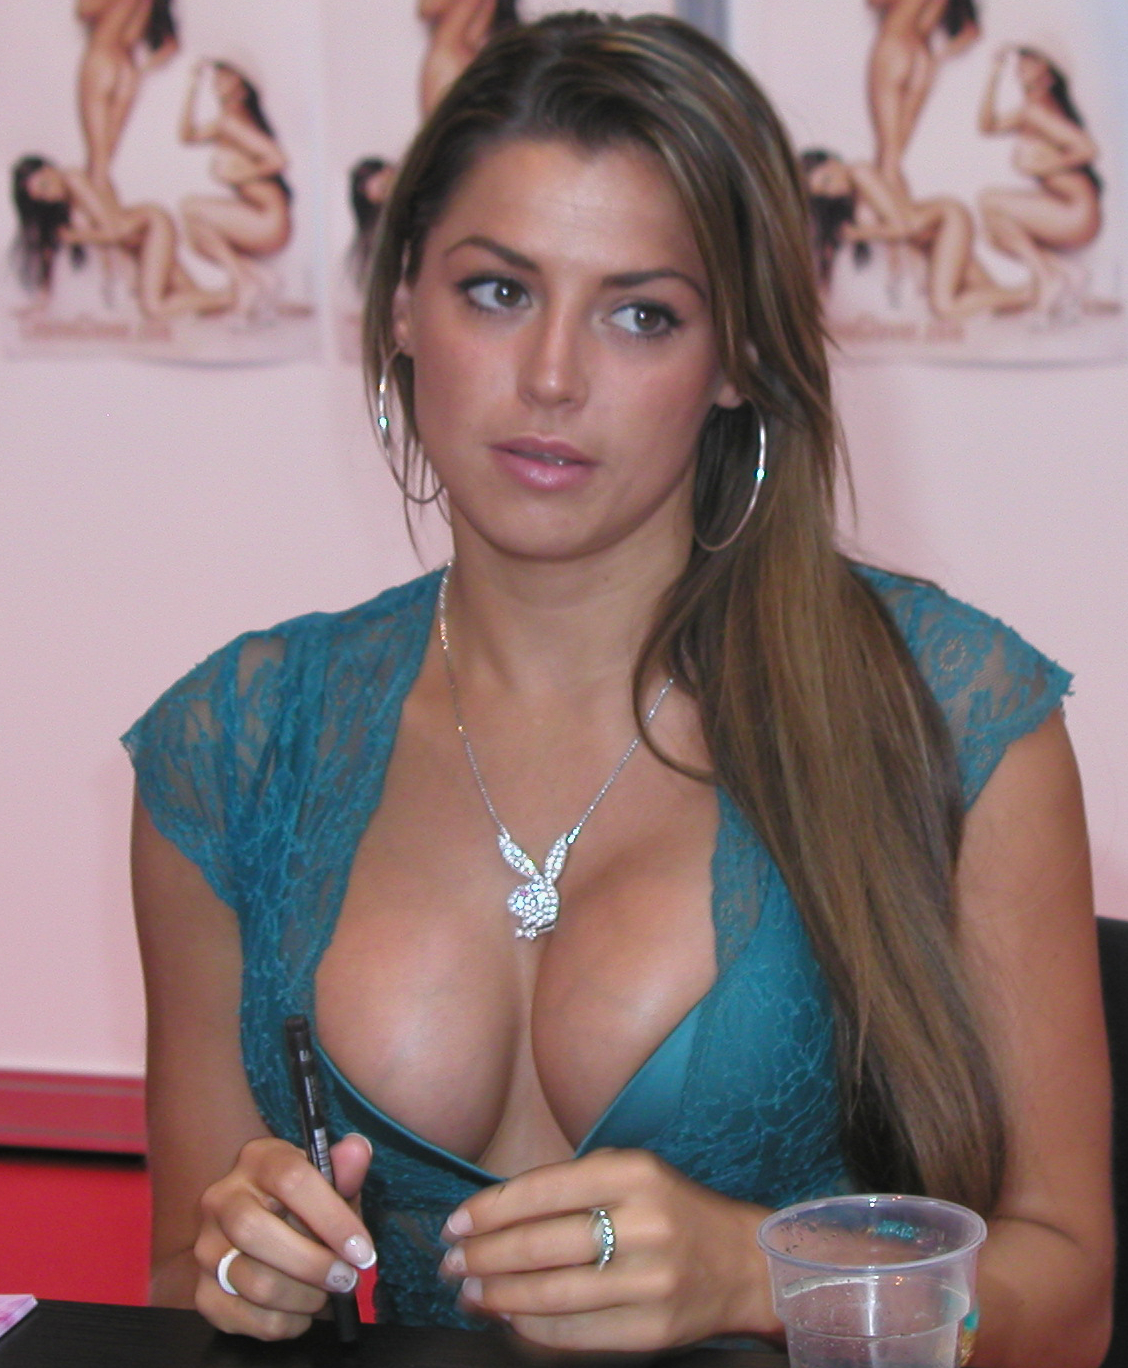 Louise Glover nudes (17 pictures) Porno, 2015, braless